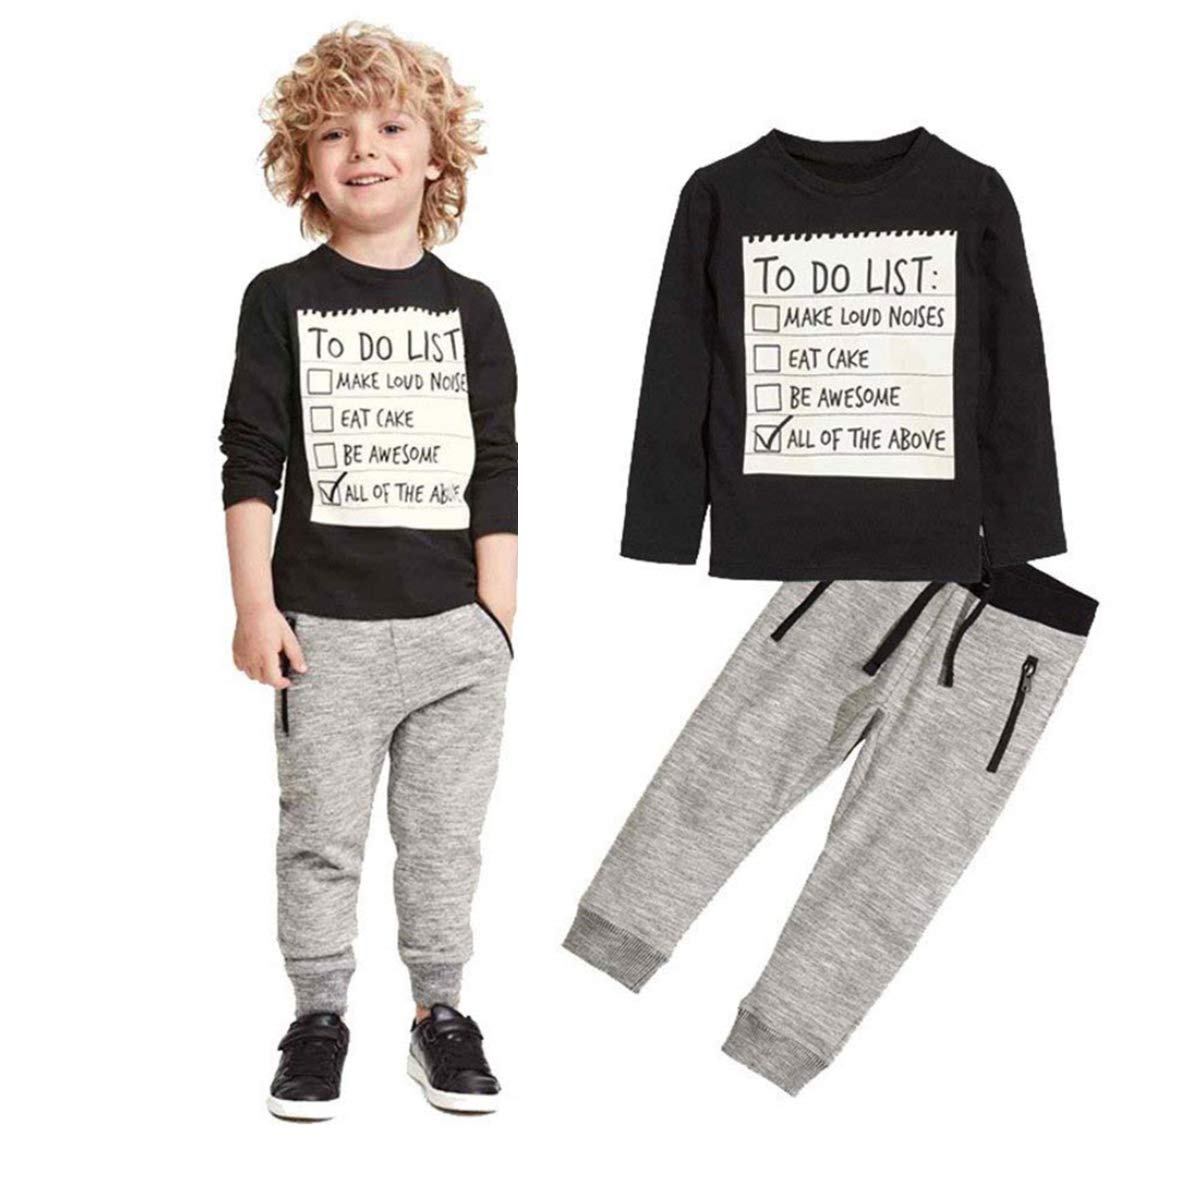 Baby Boy Clothes Funny Letter Printed Tops Leggings Pants Outfits Set for Toddler (Black,5T)